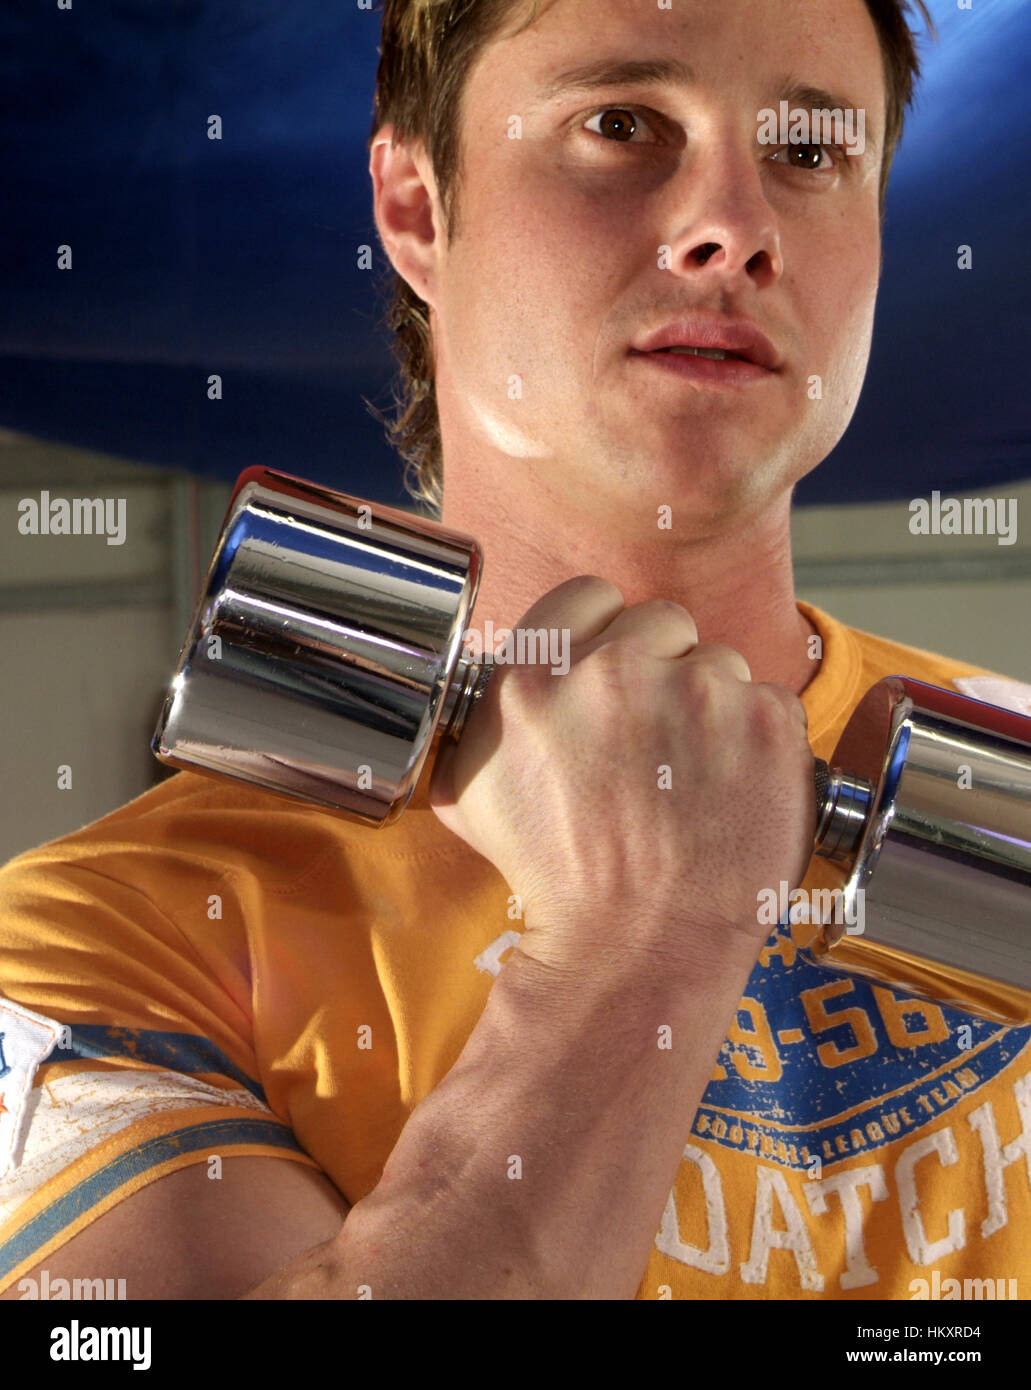 Young man trains with dumbbells - Stock Image